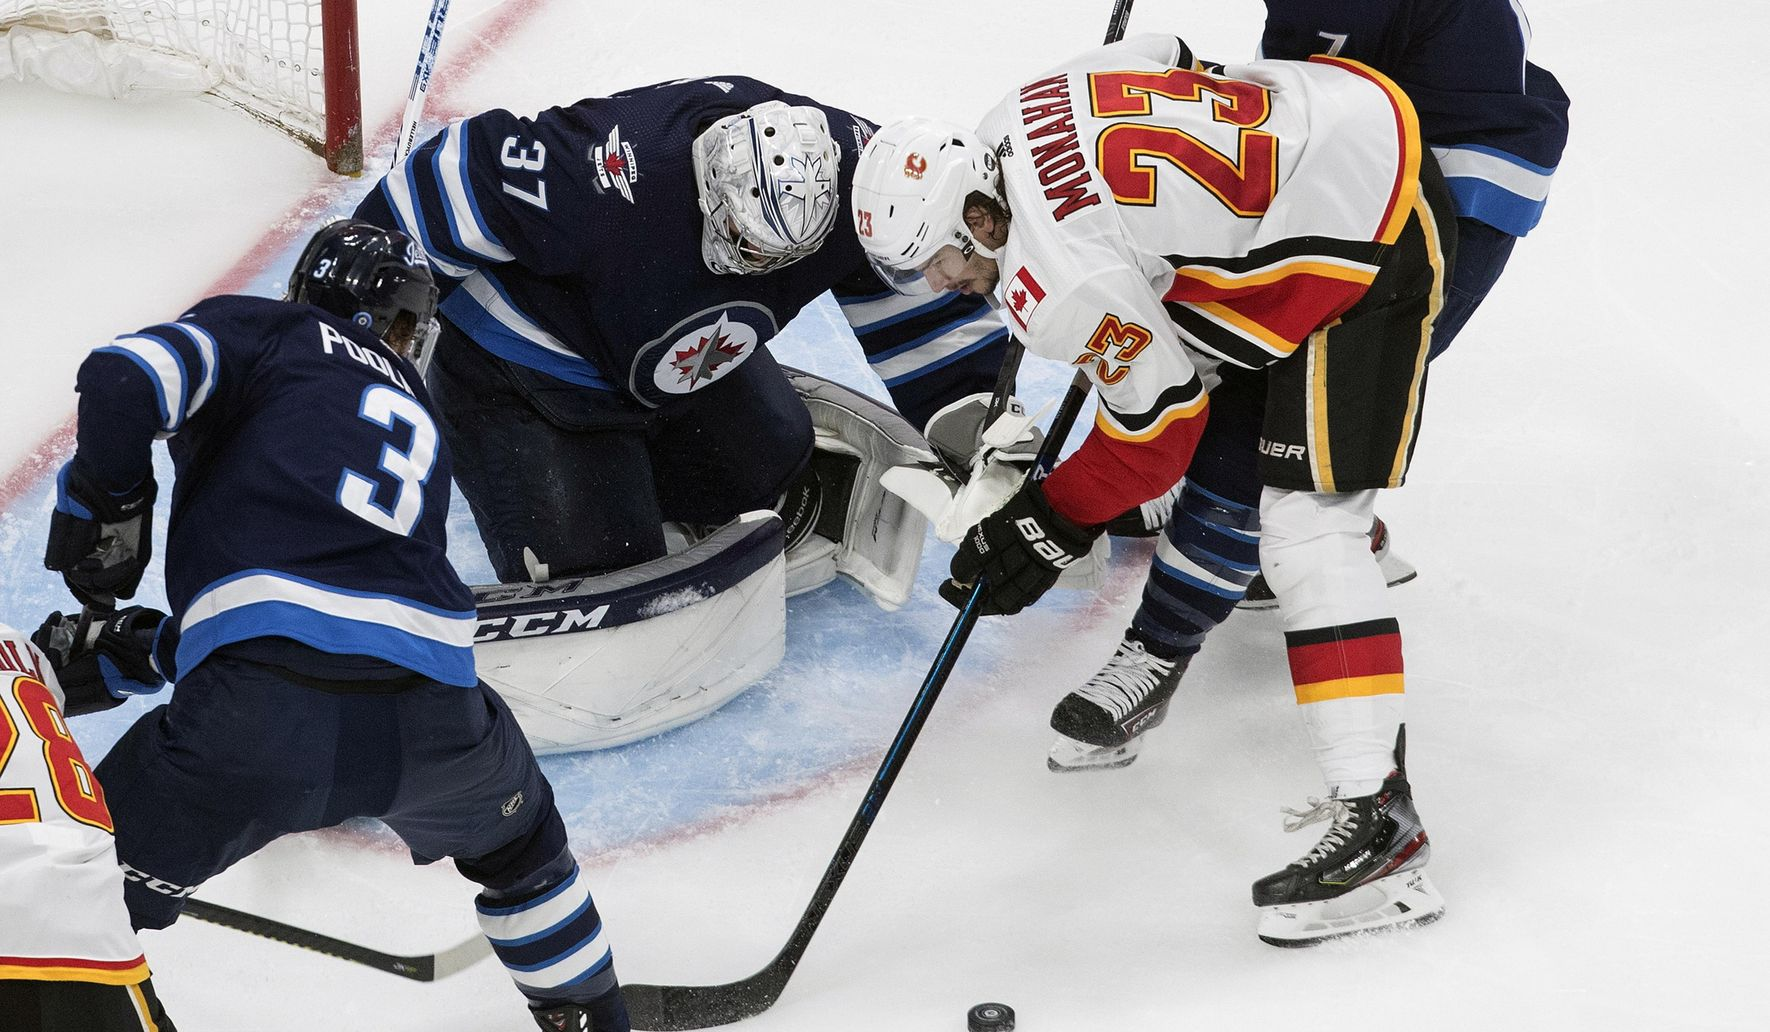 Flames_jets_hockey_33431_c0-214-4197-2661_s1770x1032